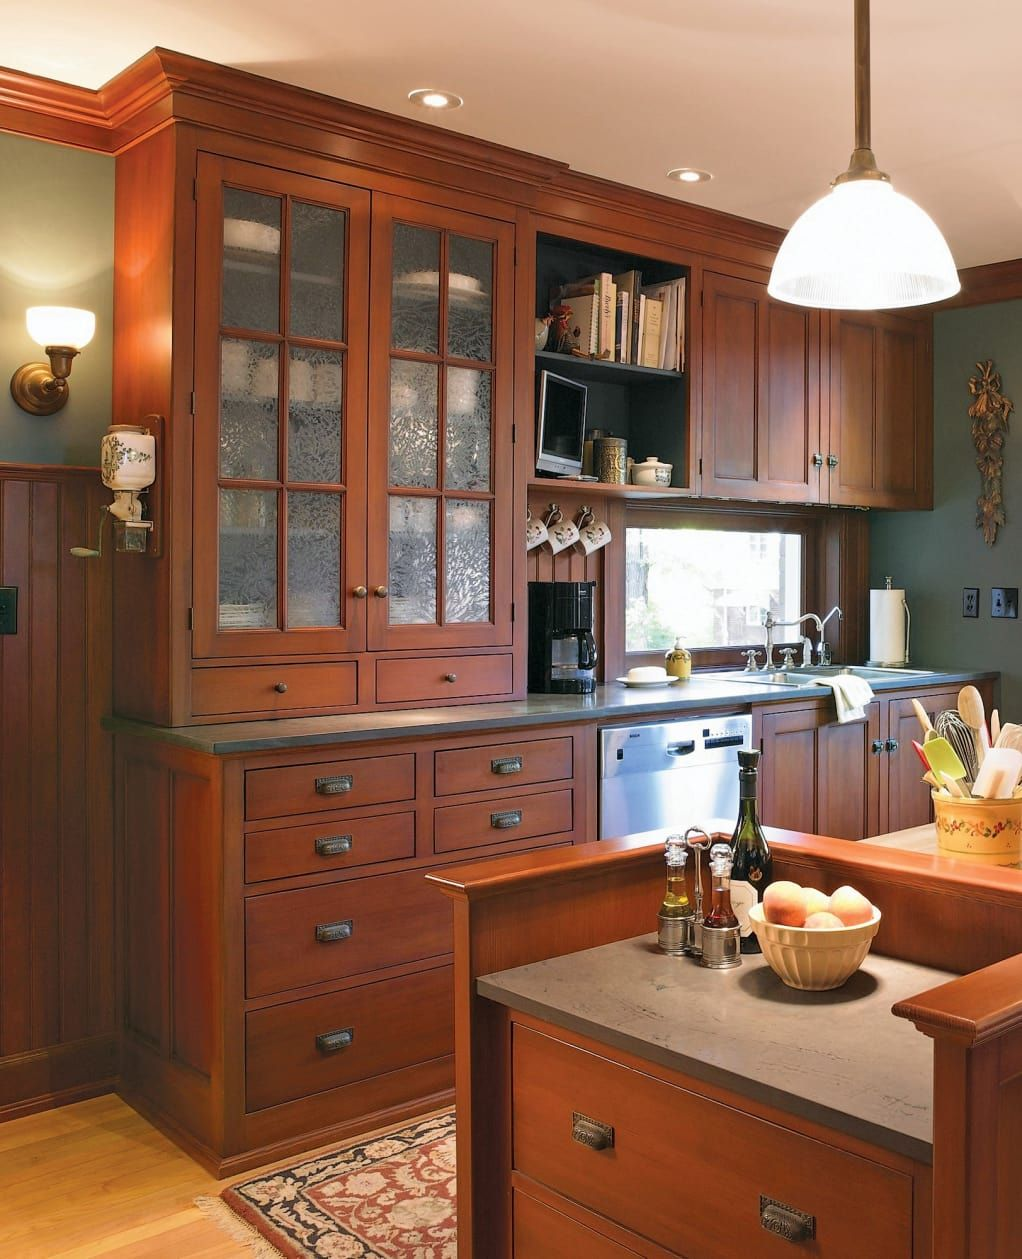 Kitchen Cabinets For Period Houses Restoration Design For The